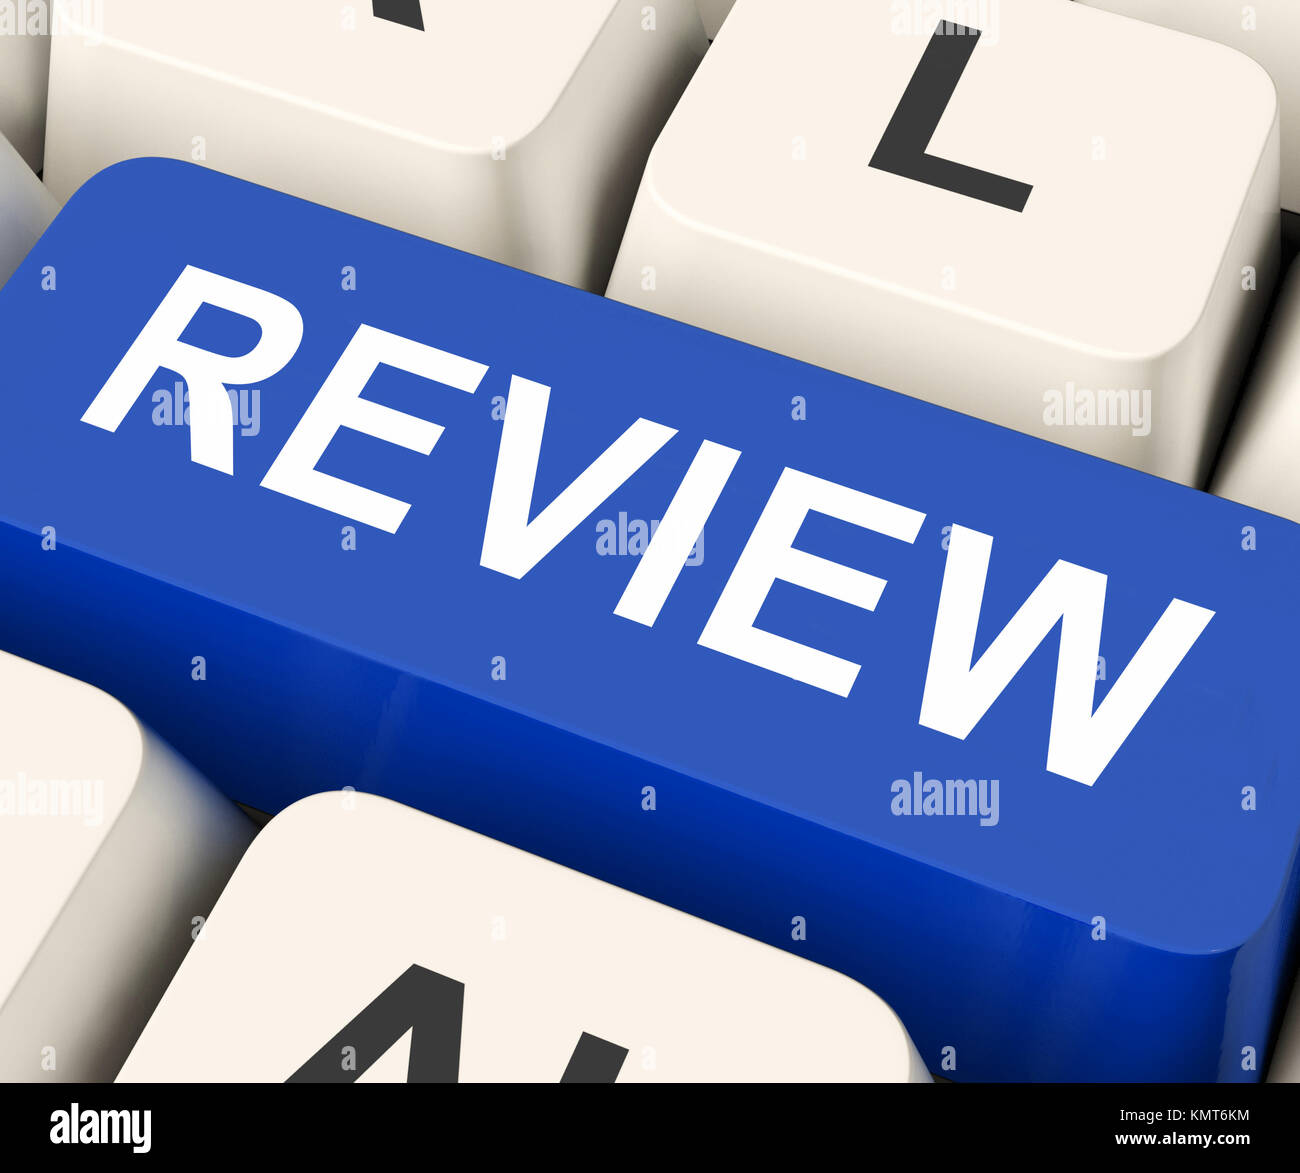 Review Key On Keyboard Meaning Rethink Revise Or Reassess - Stock Image